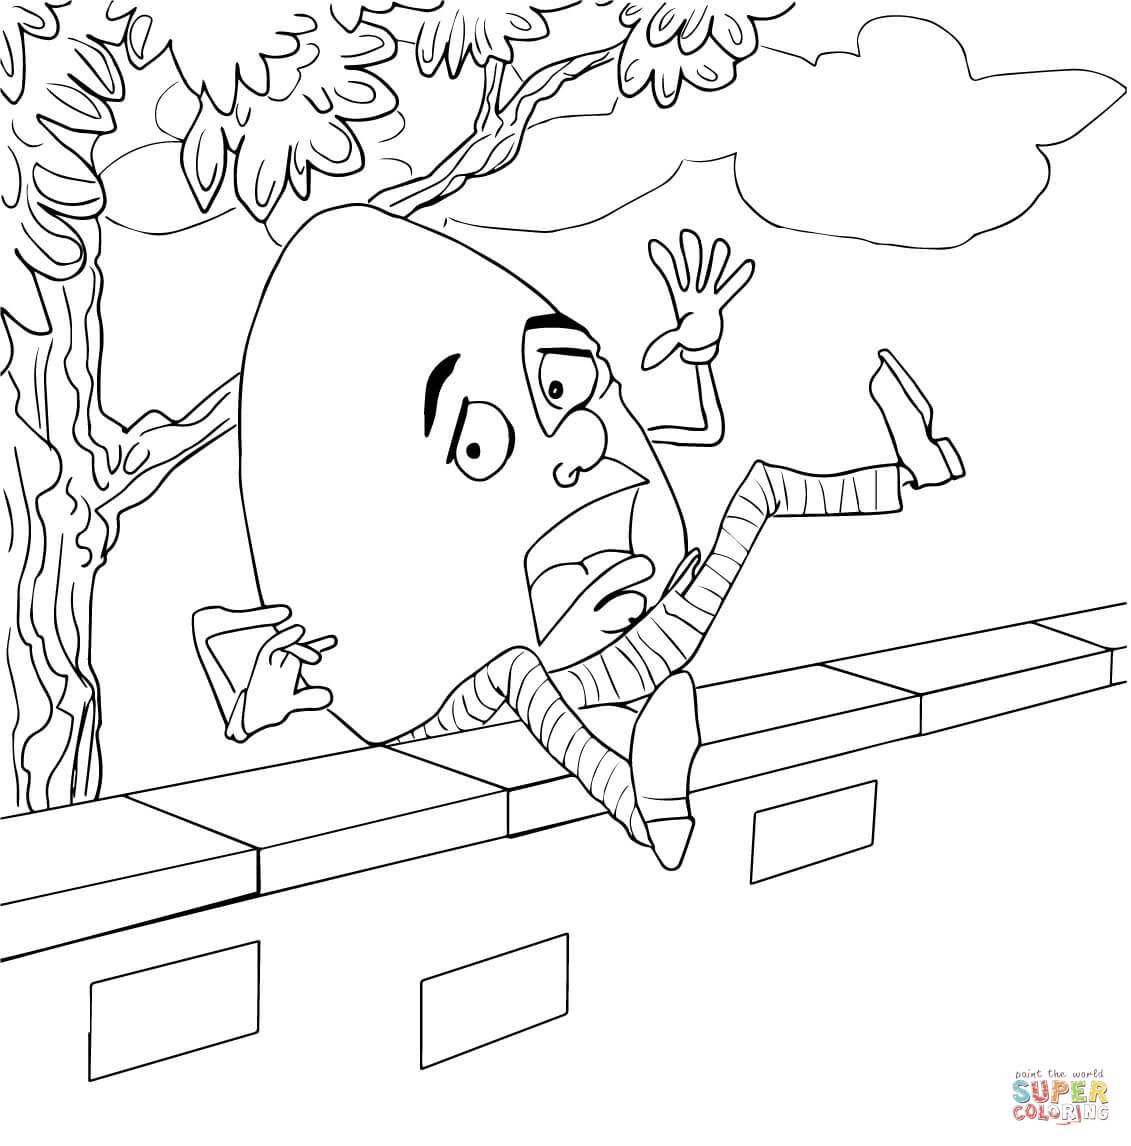 Humpty Dumpty Printable Book Humpty Dumpty Coloring Pages to and Print for Free